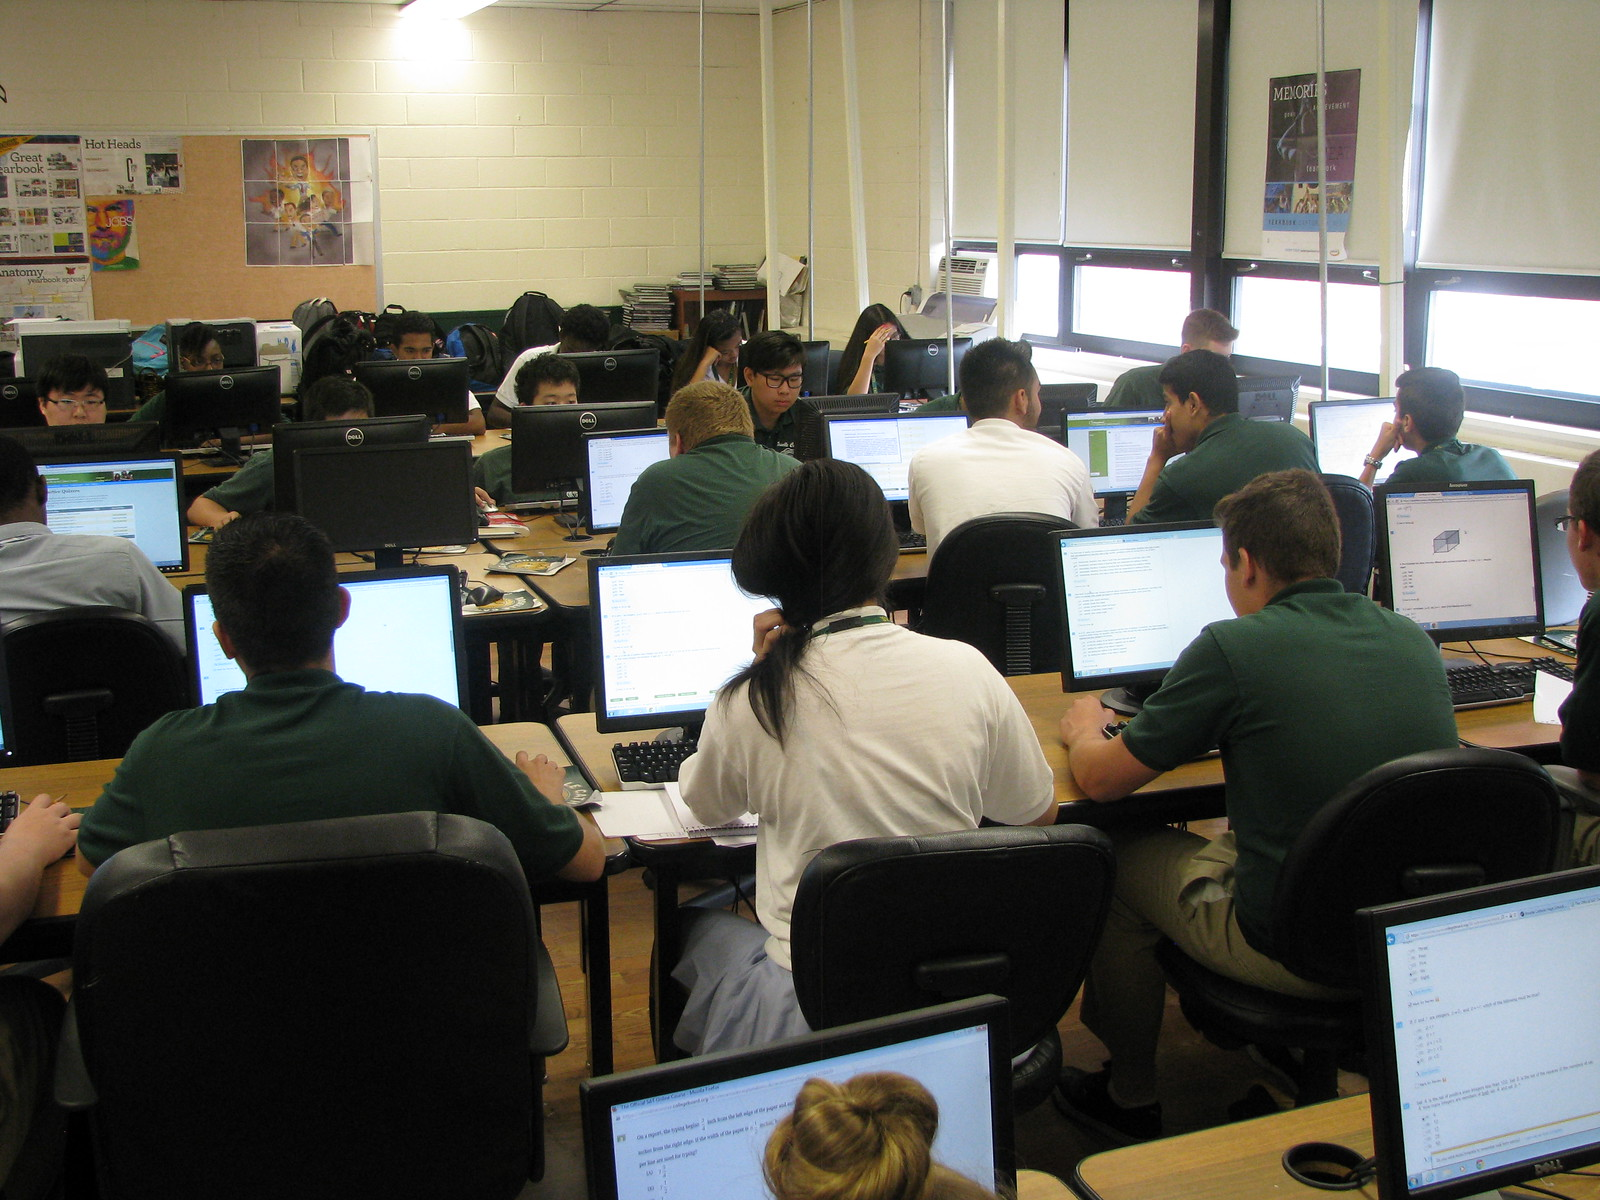 SAT Prep - The SAT is a test developed and administered by The College Board which many colleges use as one criterion in admissions decisions.  A student's performance on the SAT is, therefore,  an important factor in determining the scope of his/her college options. That performance can be enhanced by a good test preparation experience.To insure that all our students have access to such an experience, RC conducts its own SAT test prep course, which all our Juniors take during the two weeks immediately preceding the June administration of the SAT.  Over those ten school days, our Juniors spend the entire day in test prep classes organized and conducted by our faculty, classes that cover both content and test-taking strategies. We use materials supplied by The College Board itself, which include two full scale practice SAT tests, for which students receive computer generated question-by-question analysis;  this analysis permits them to identify their particular strengths and weaknesses, and thus helps them better prepare for the exam itself.As most of our Juniors take the SAT in March, before our test prep program, and then again in June, immediately after the program, we are in a unique position to assess our program's effectiveness.  We see every year that almost all of our students show solid improvement from March to June, with some of them enjoying an increase of hundreds of points.